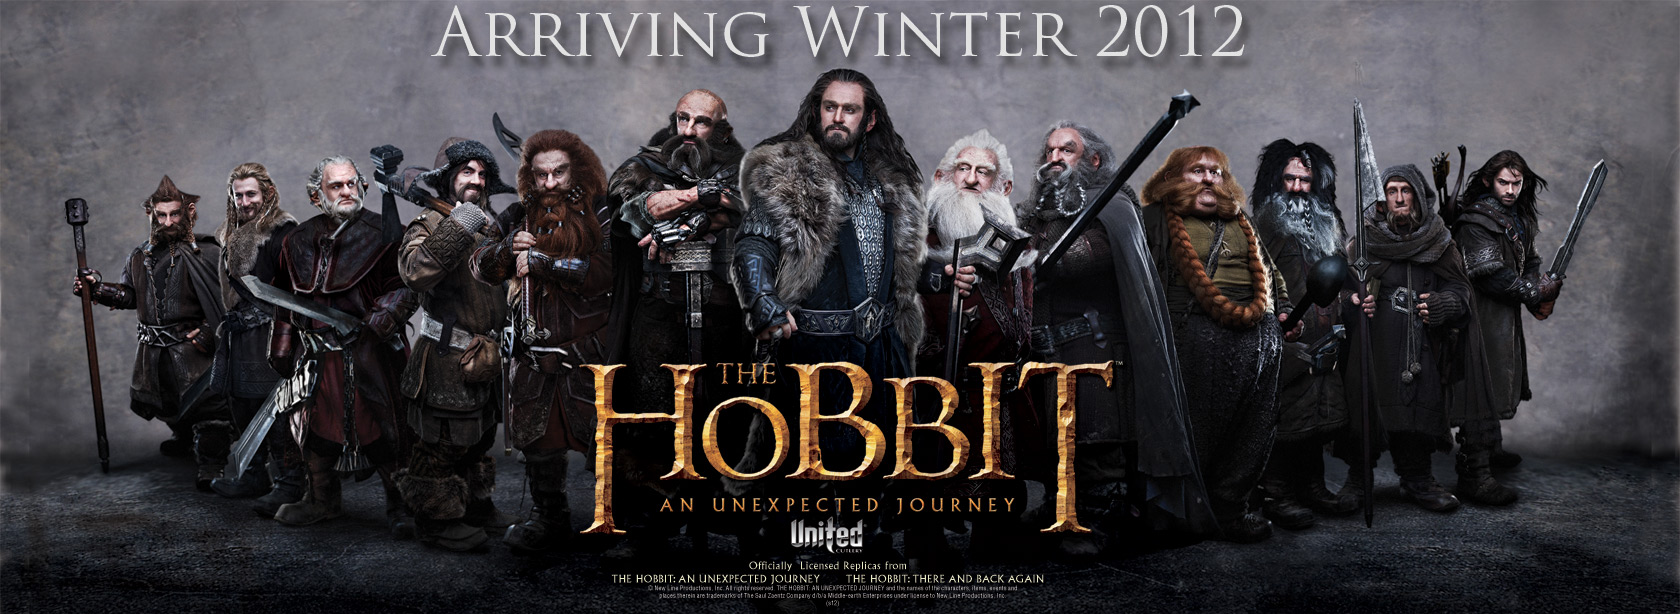 hobbit filmhobbit 3, hobbit 2, hobbit steam, hobbit cs go, hobbit 1, hobbit 4, hobbit book, hobbit 3 turkce dublaj, hobbit watch online, hobbit 2 turkce dublaj, hobbit uzbek tilida, hobbit house, hobbit 3 смотреть онлайн, hobbit film, hobbit unexpected journey, hobbit game, hobbit 2 uzbek tilida, hobbit 3 o'zbek tilida, hobbit 3 watch online, hobbit 2 watch online